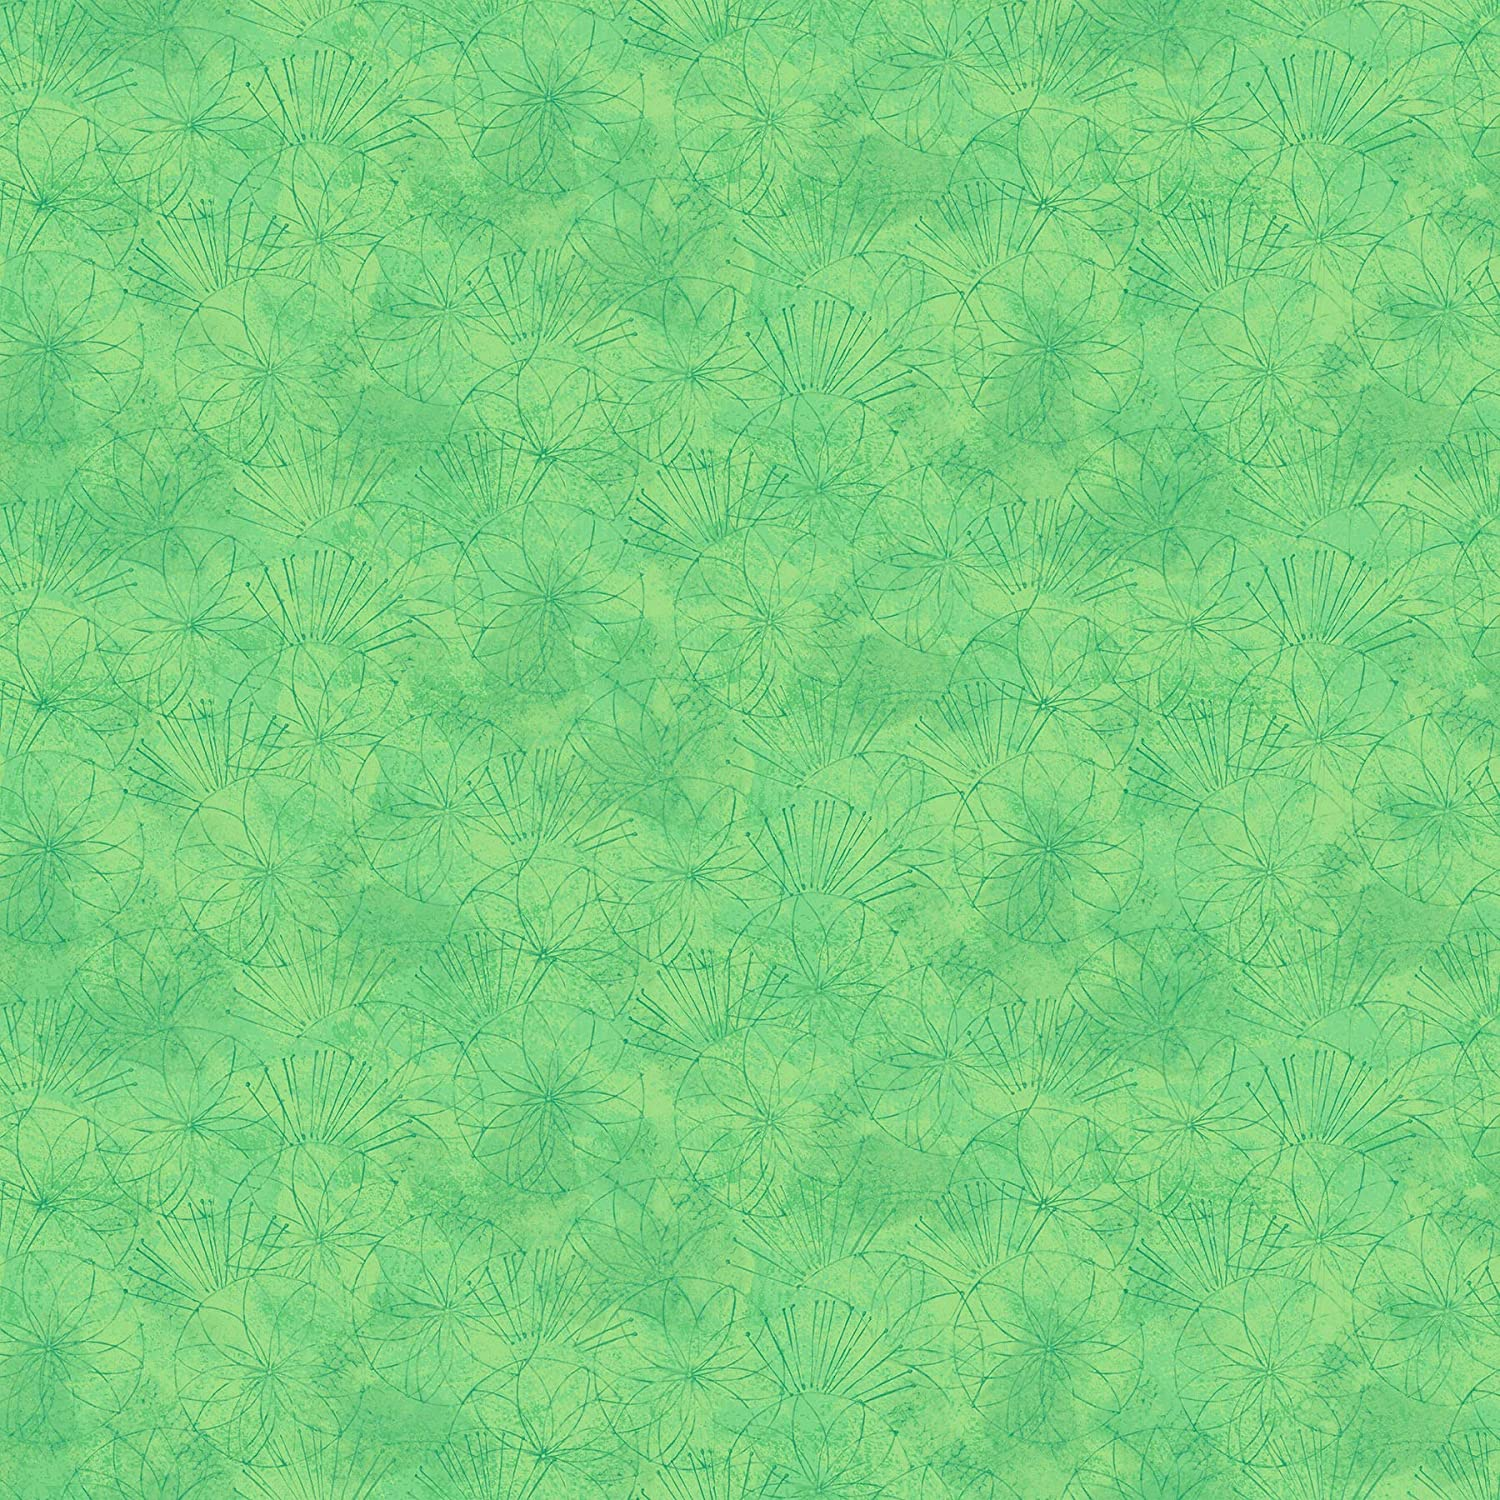 Shimmer Koi Pond by Karen Sikie from Northcott 22351 73 Green Cotton QuiltFabric by The Yard